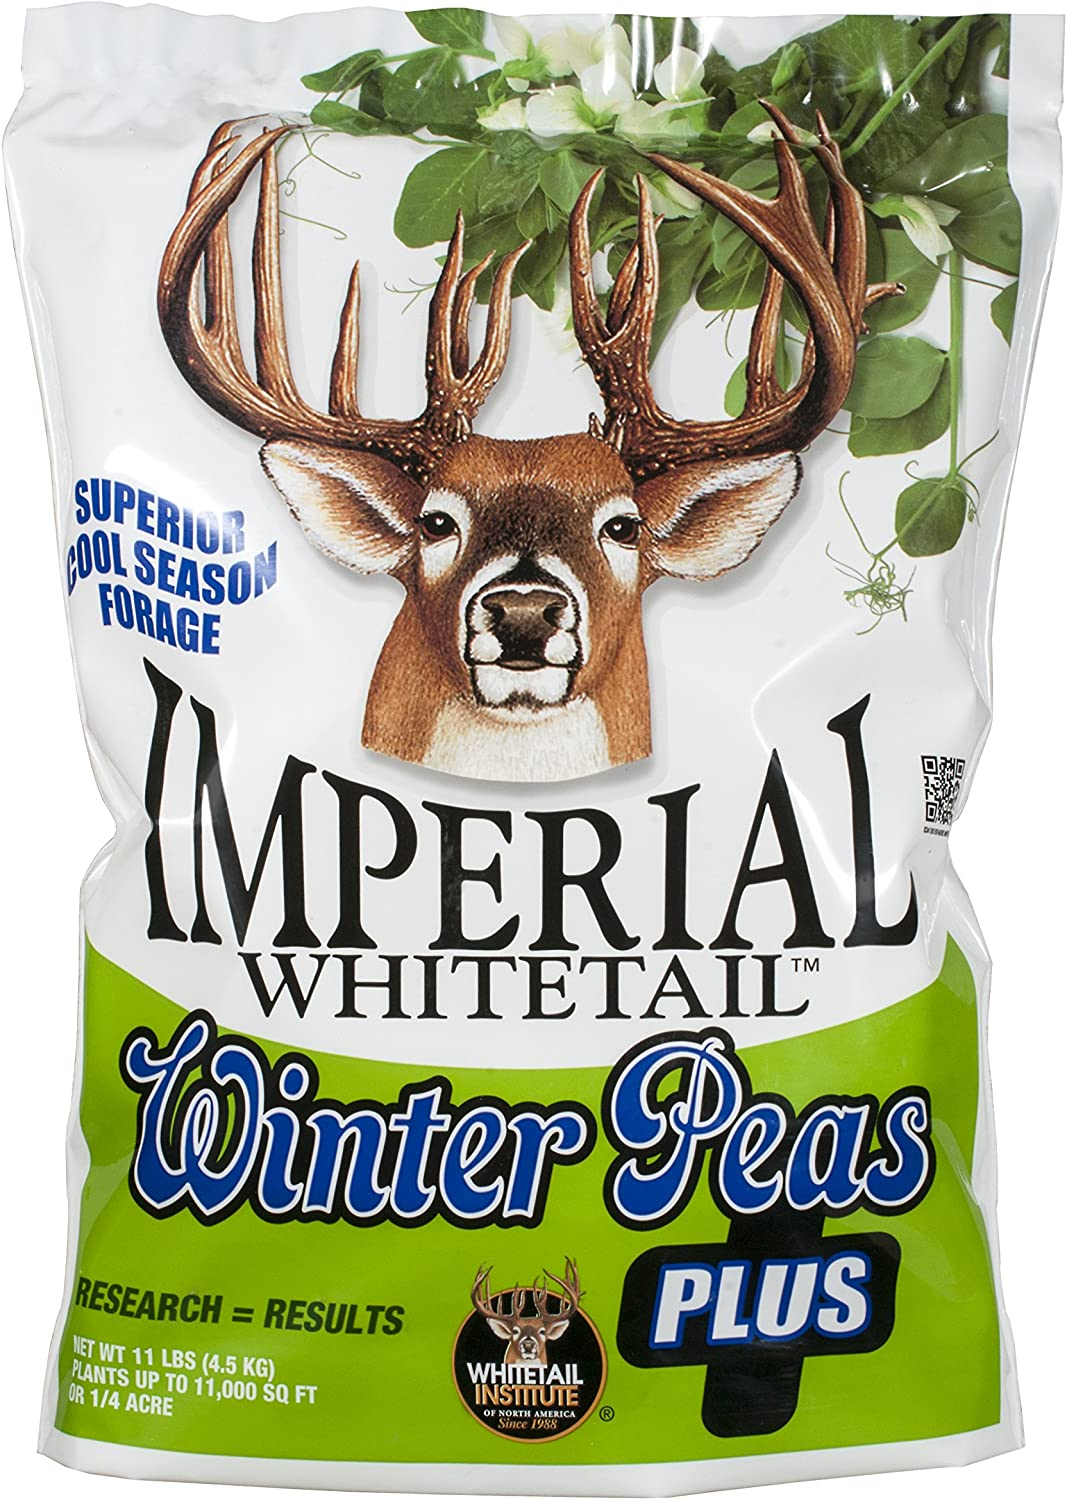 Whitetail Institute Winter Peas Plus Deer Food Plot Seed, Superior Cool Season Forage Designed to Maximize Deer Attraction into The Late Season, Very Cold Tolerant, 11 lbs (.25 Acre)